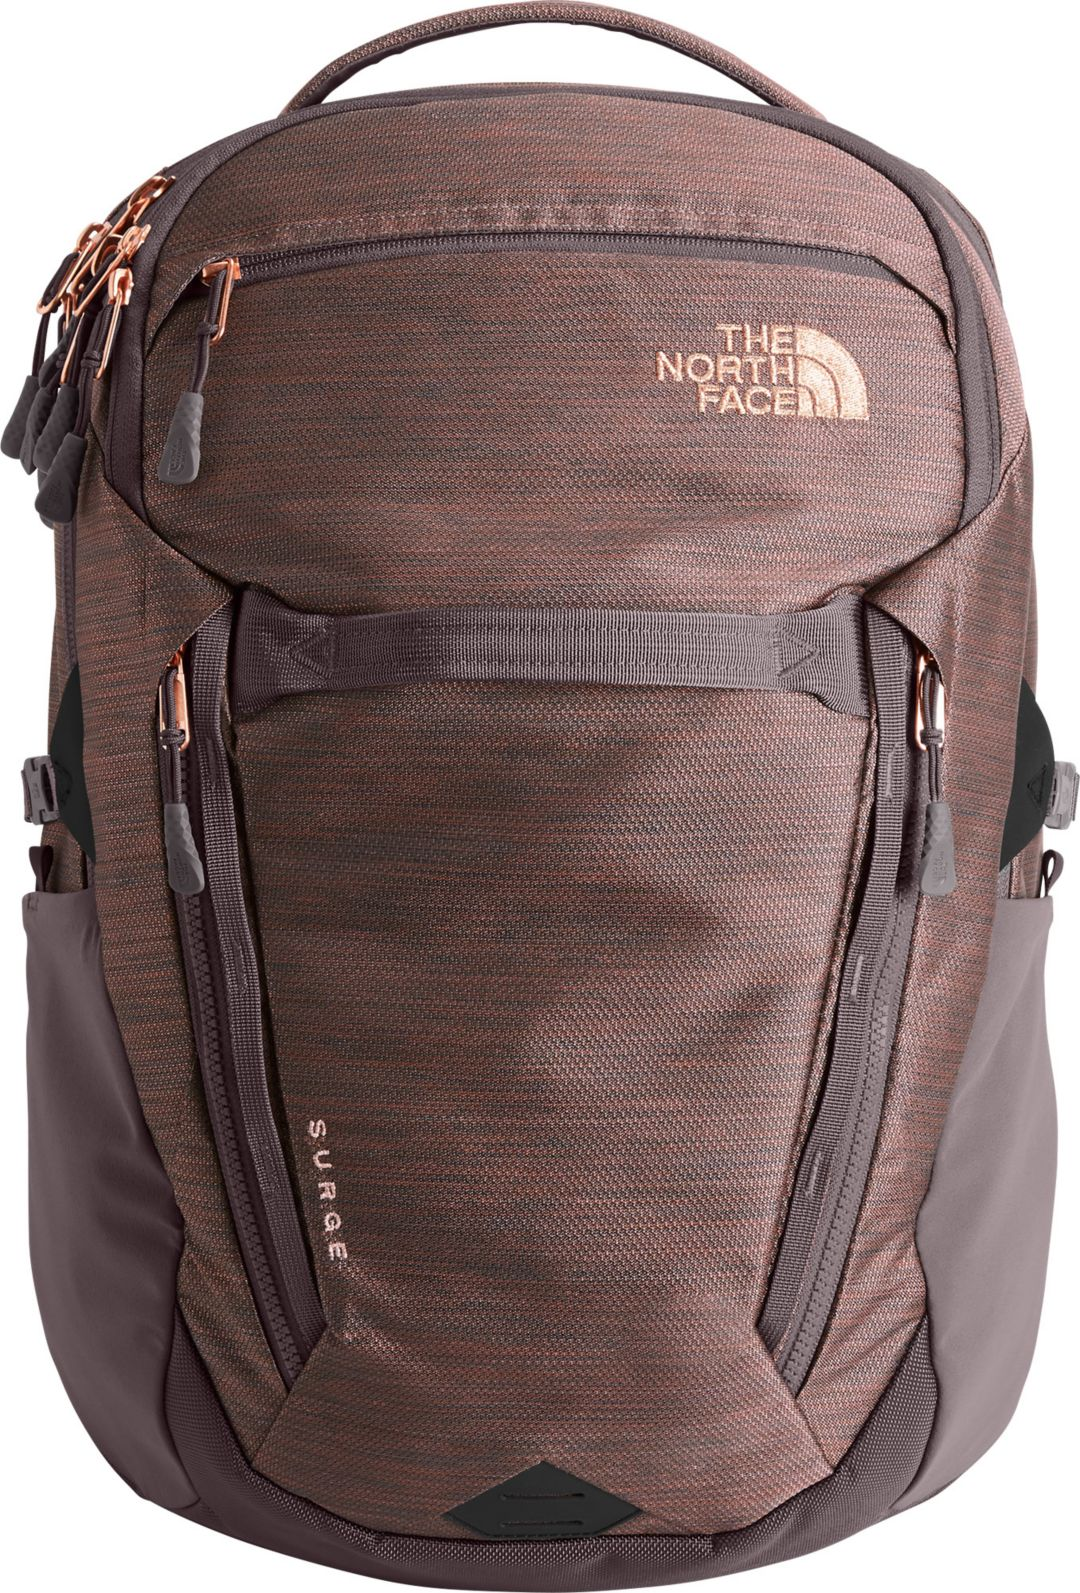 2cdefbe08 The North Face Women's Surge Luxe Backpack